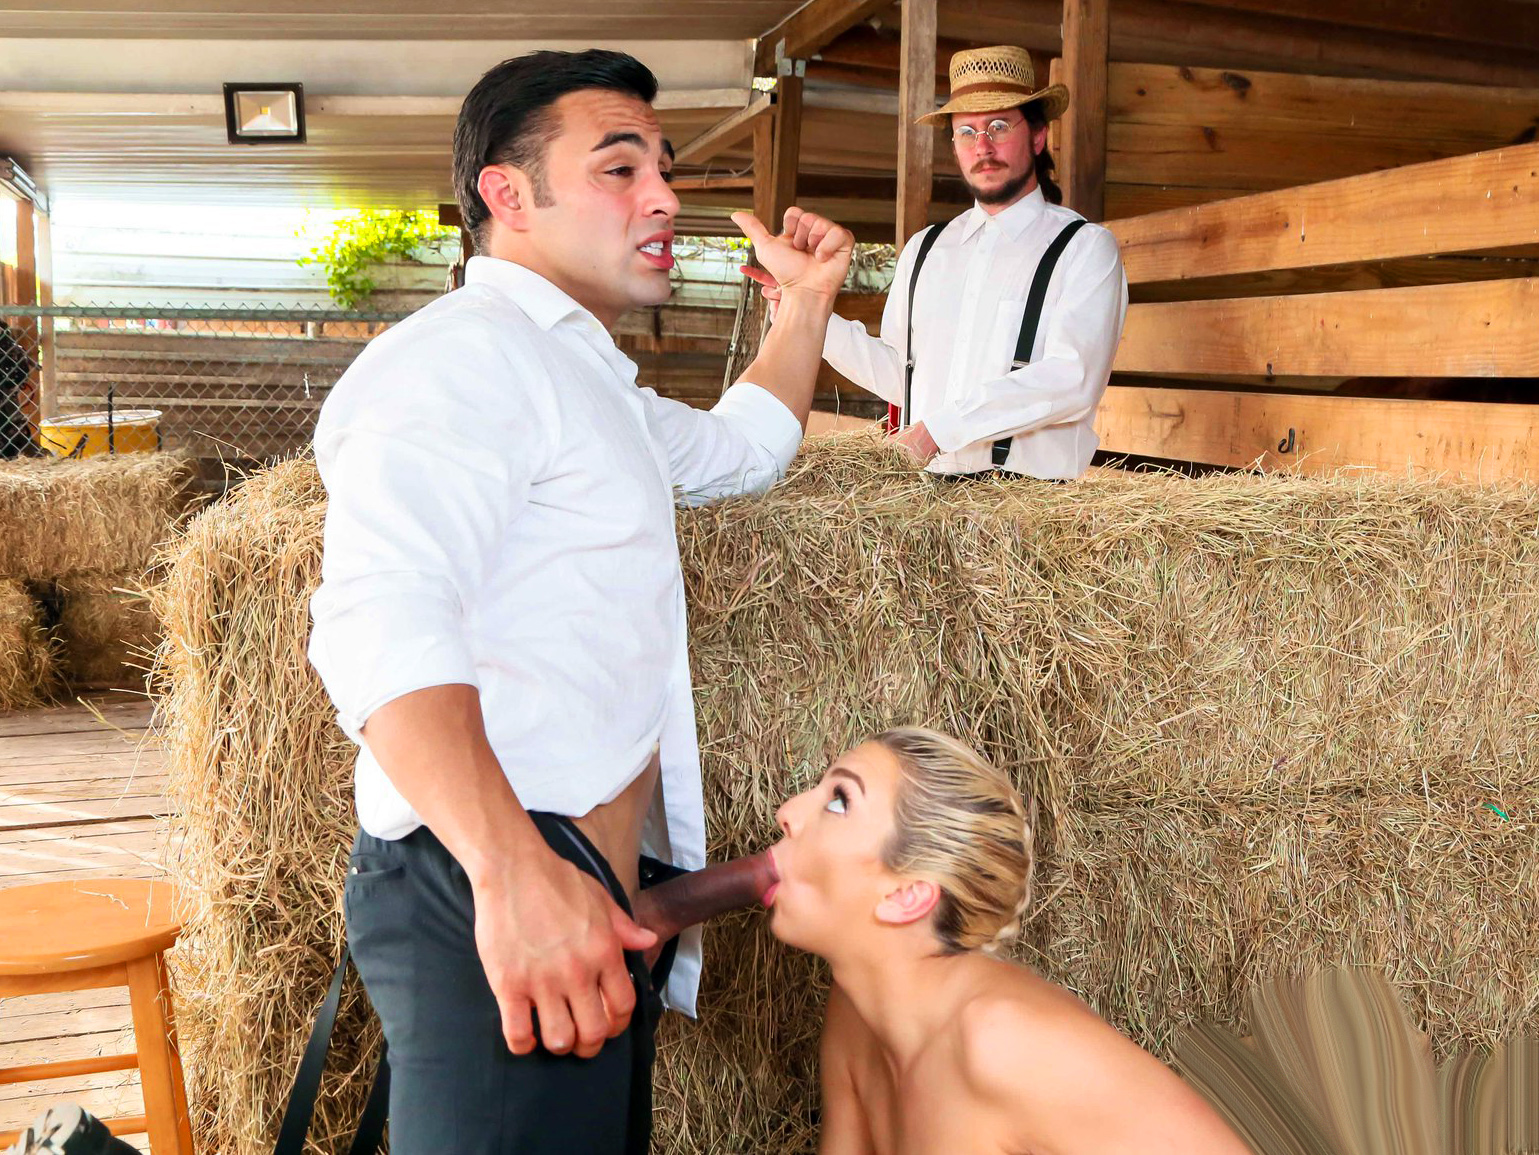 Amish anal sex